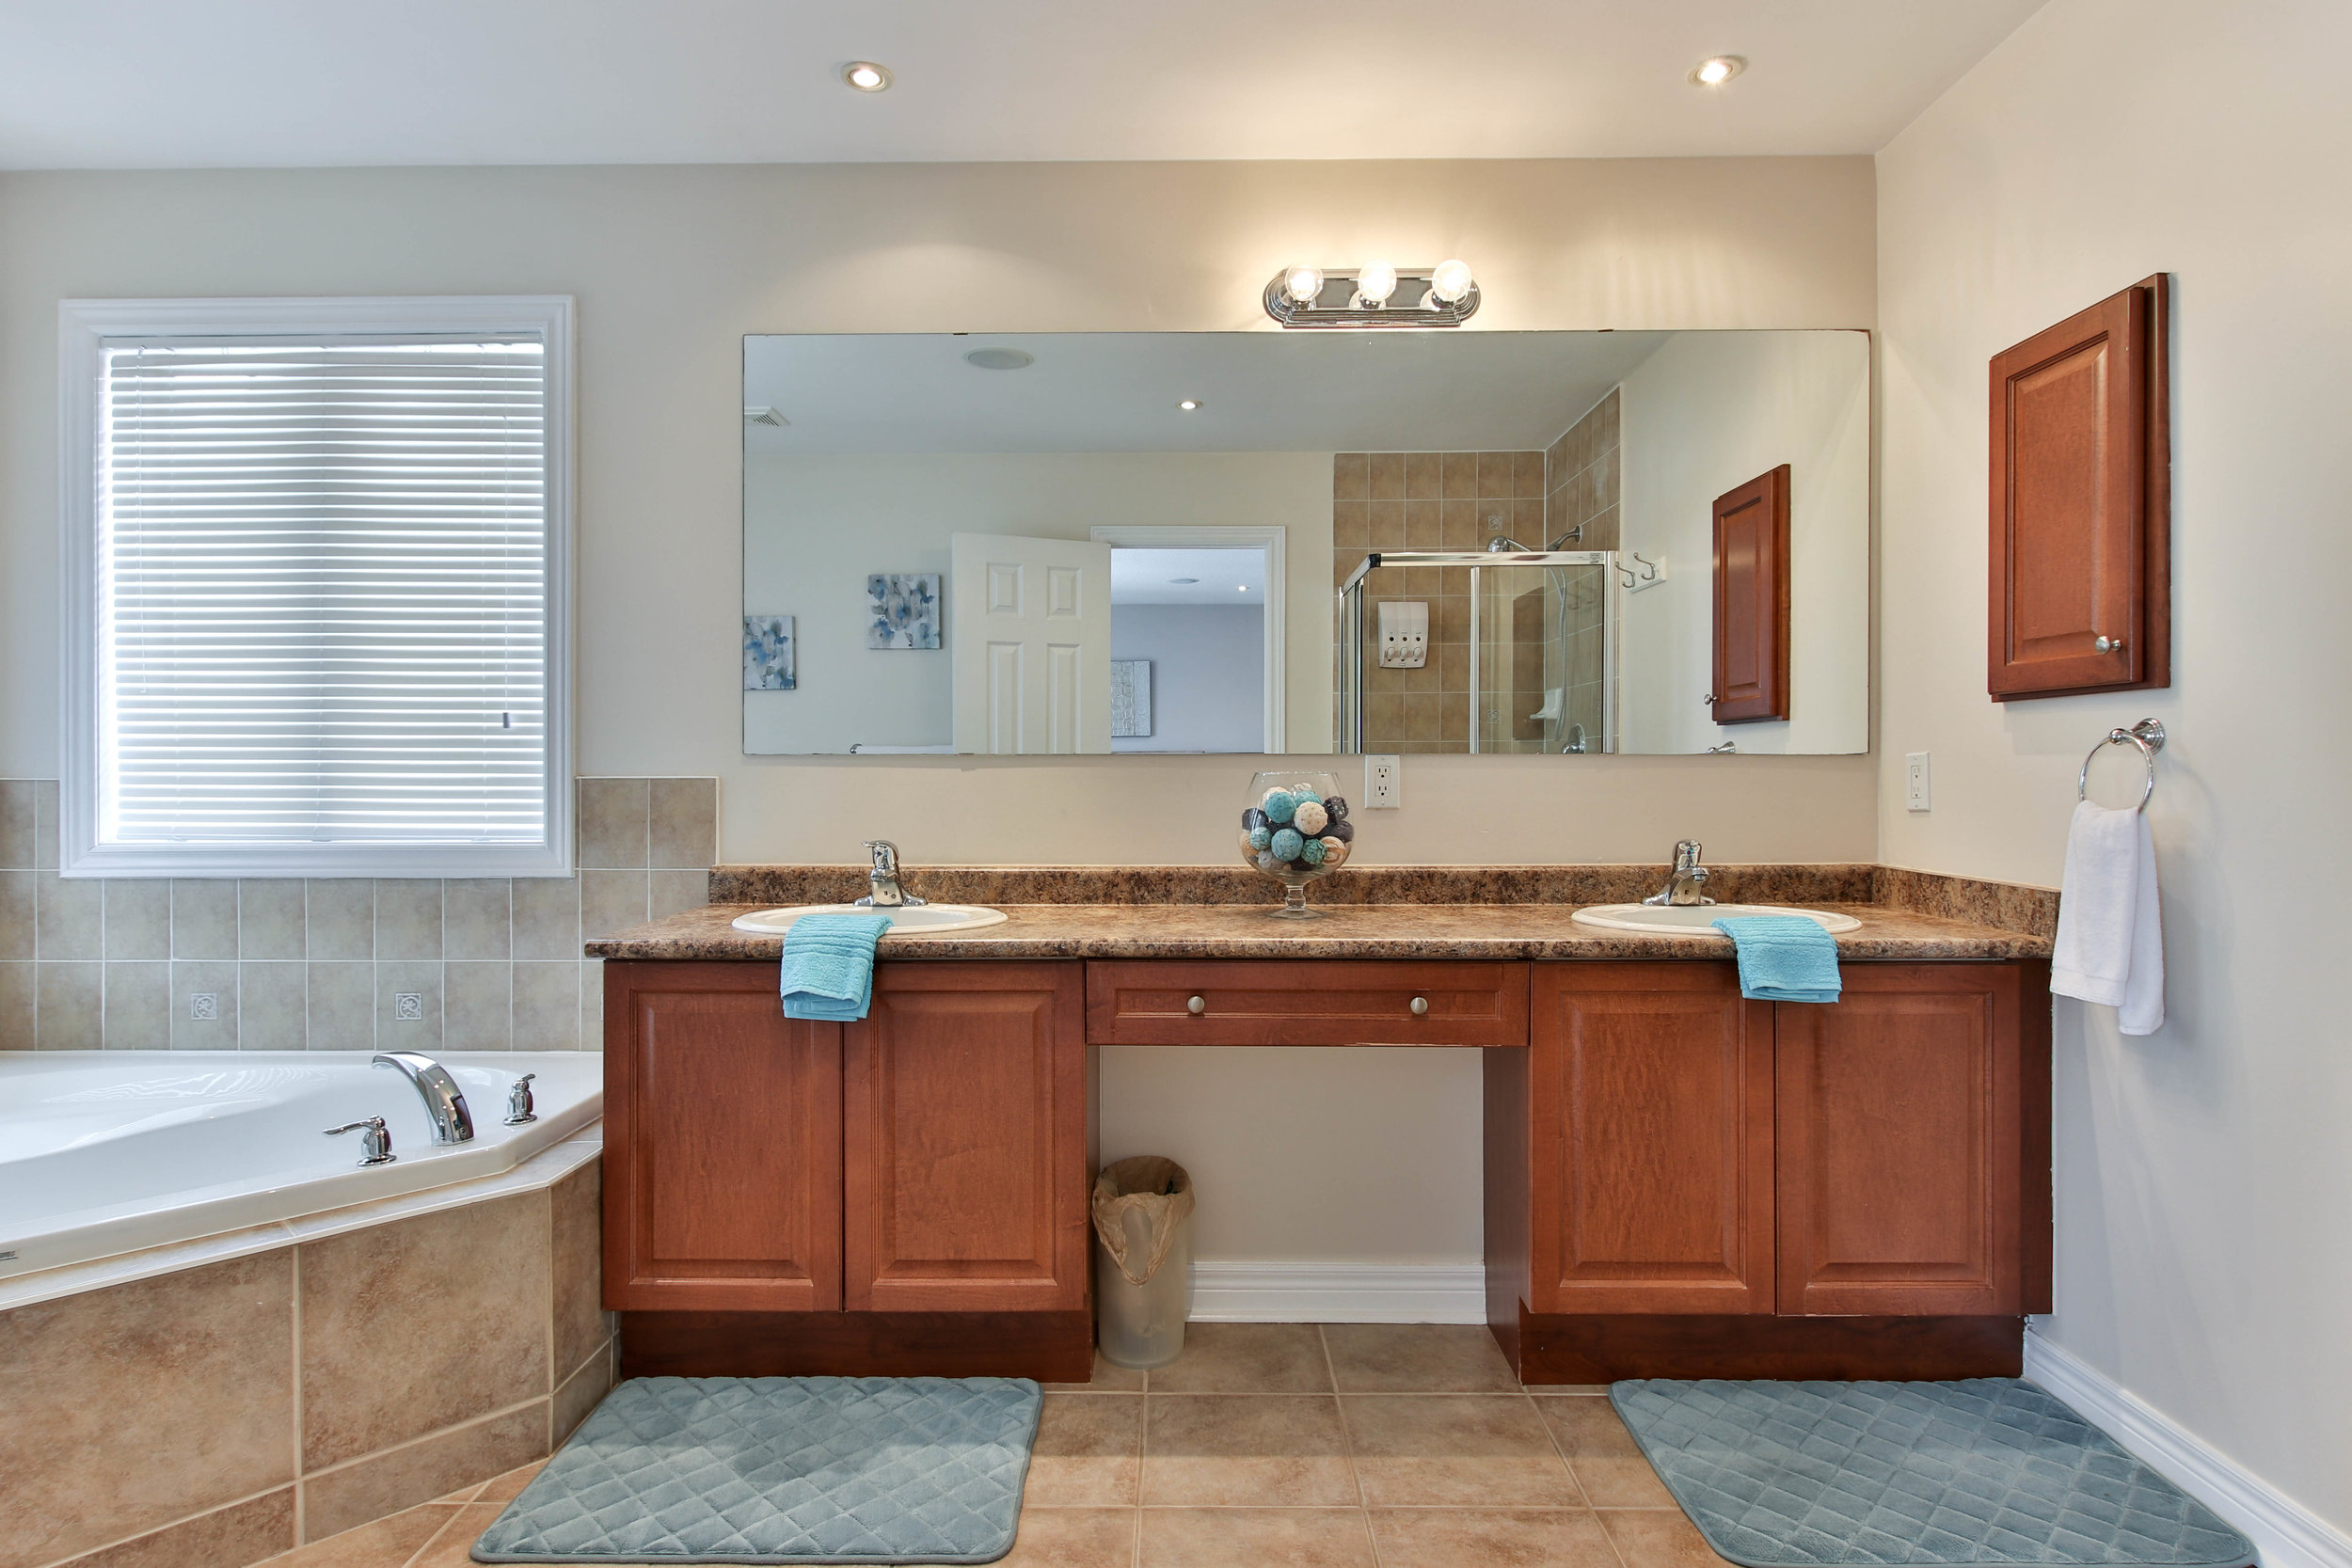 38_MasterBathroom (1 of 1).jpg